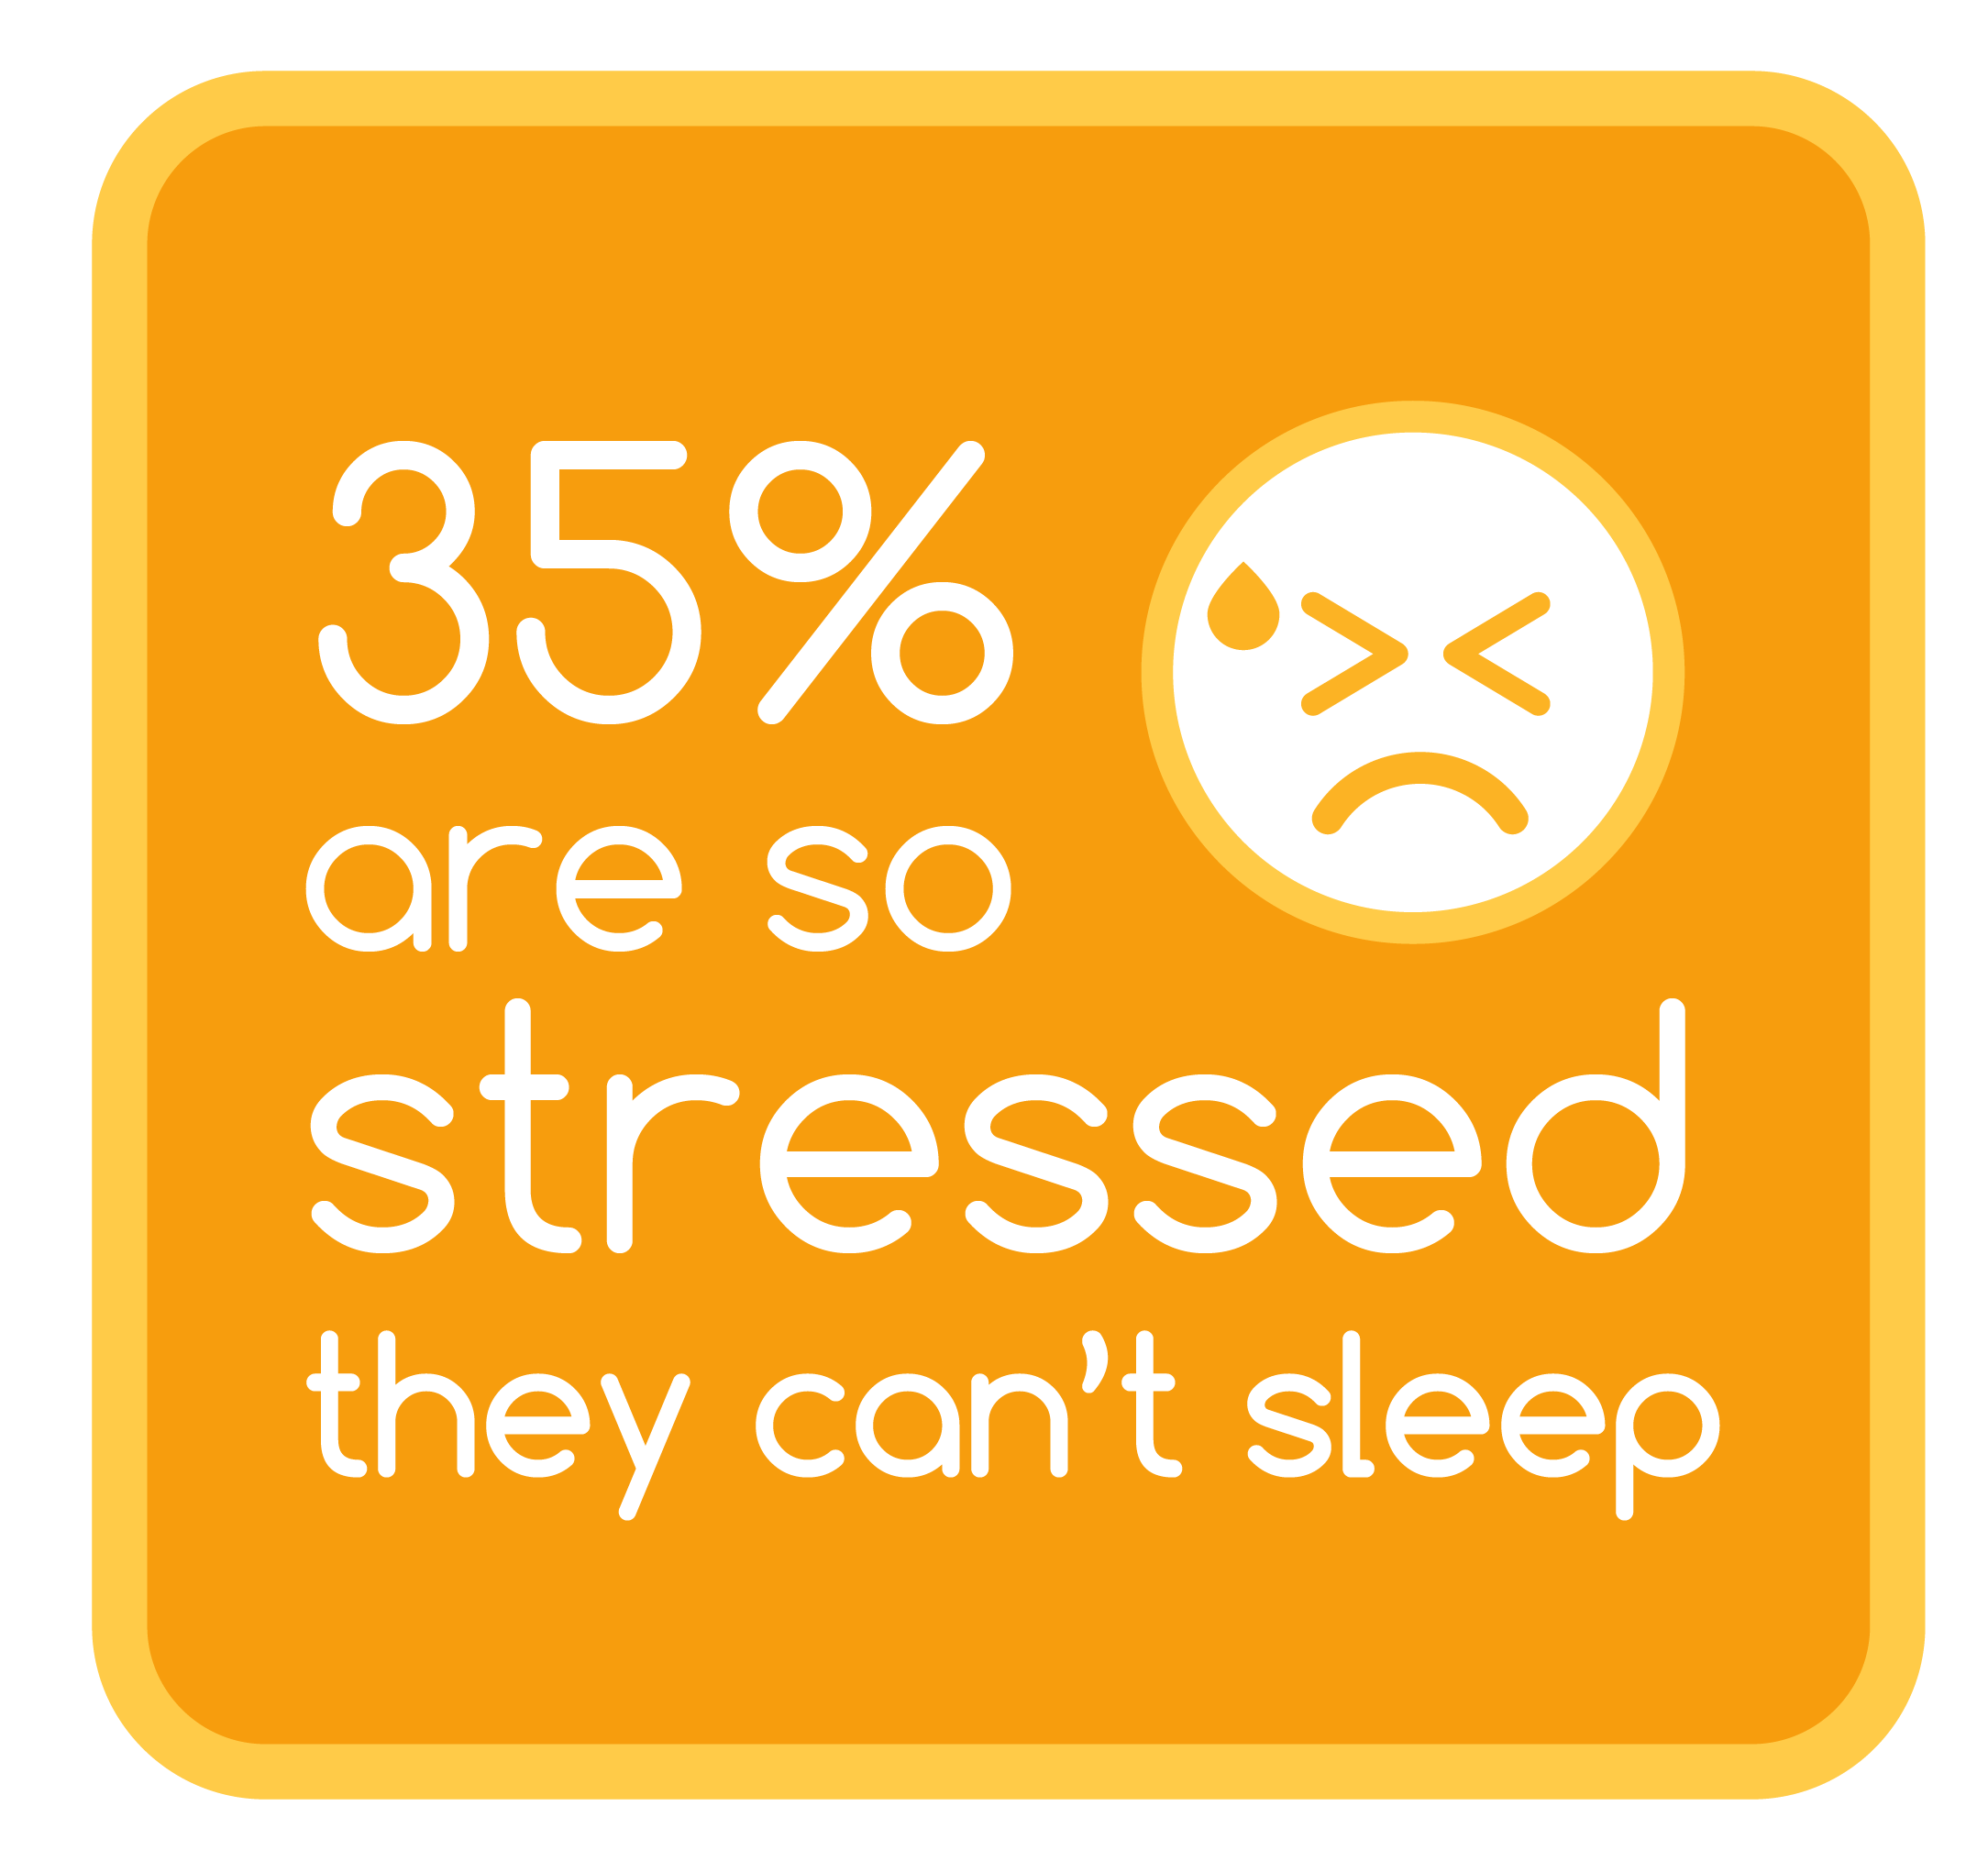 Youth Stress Statistic.png